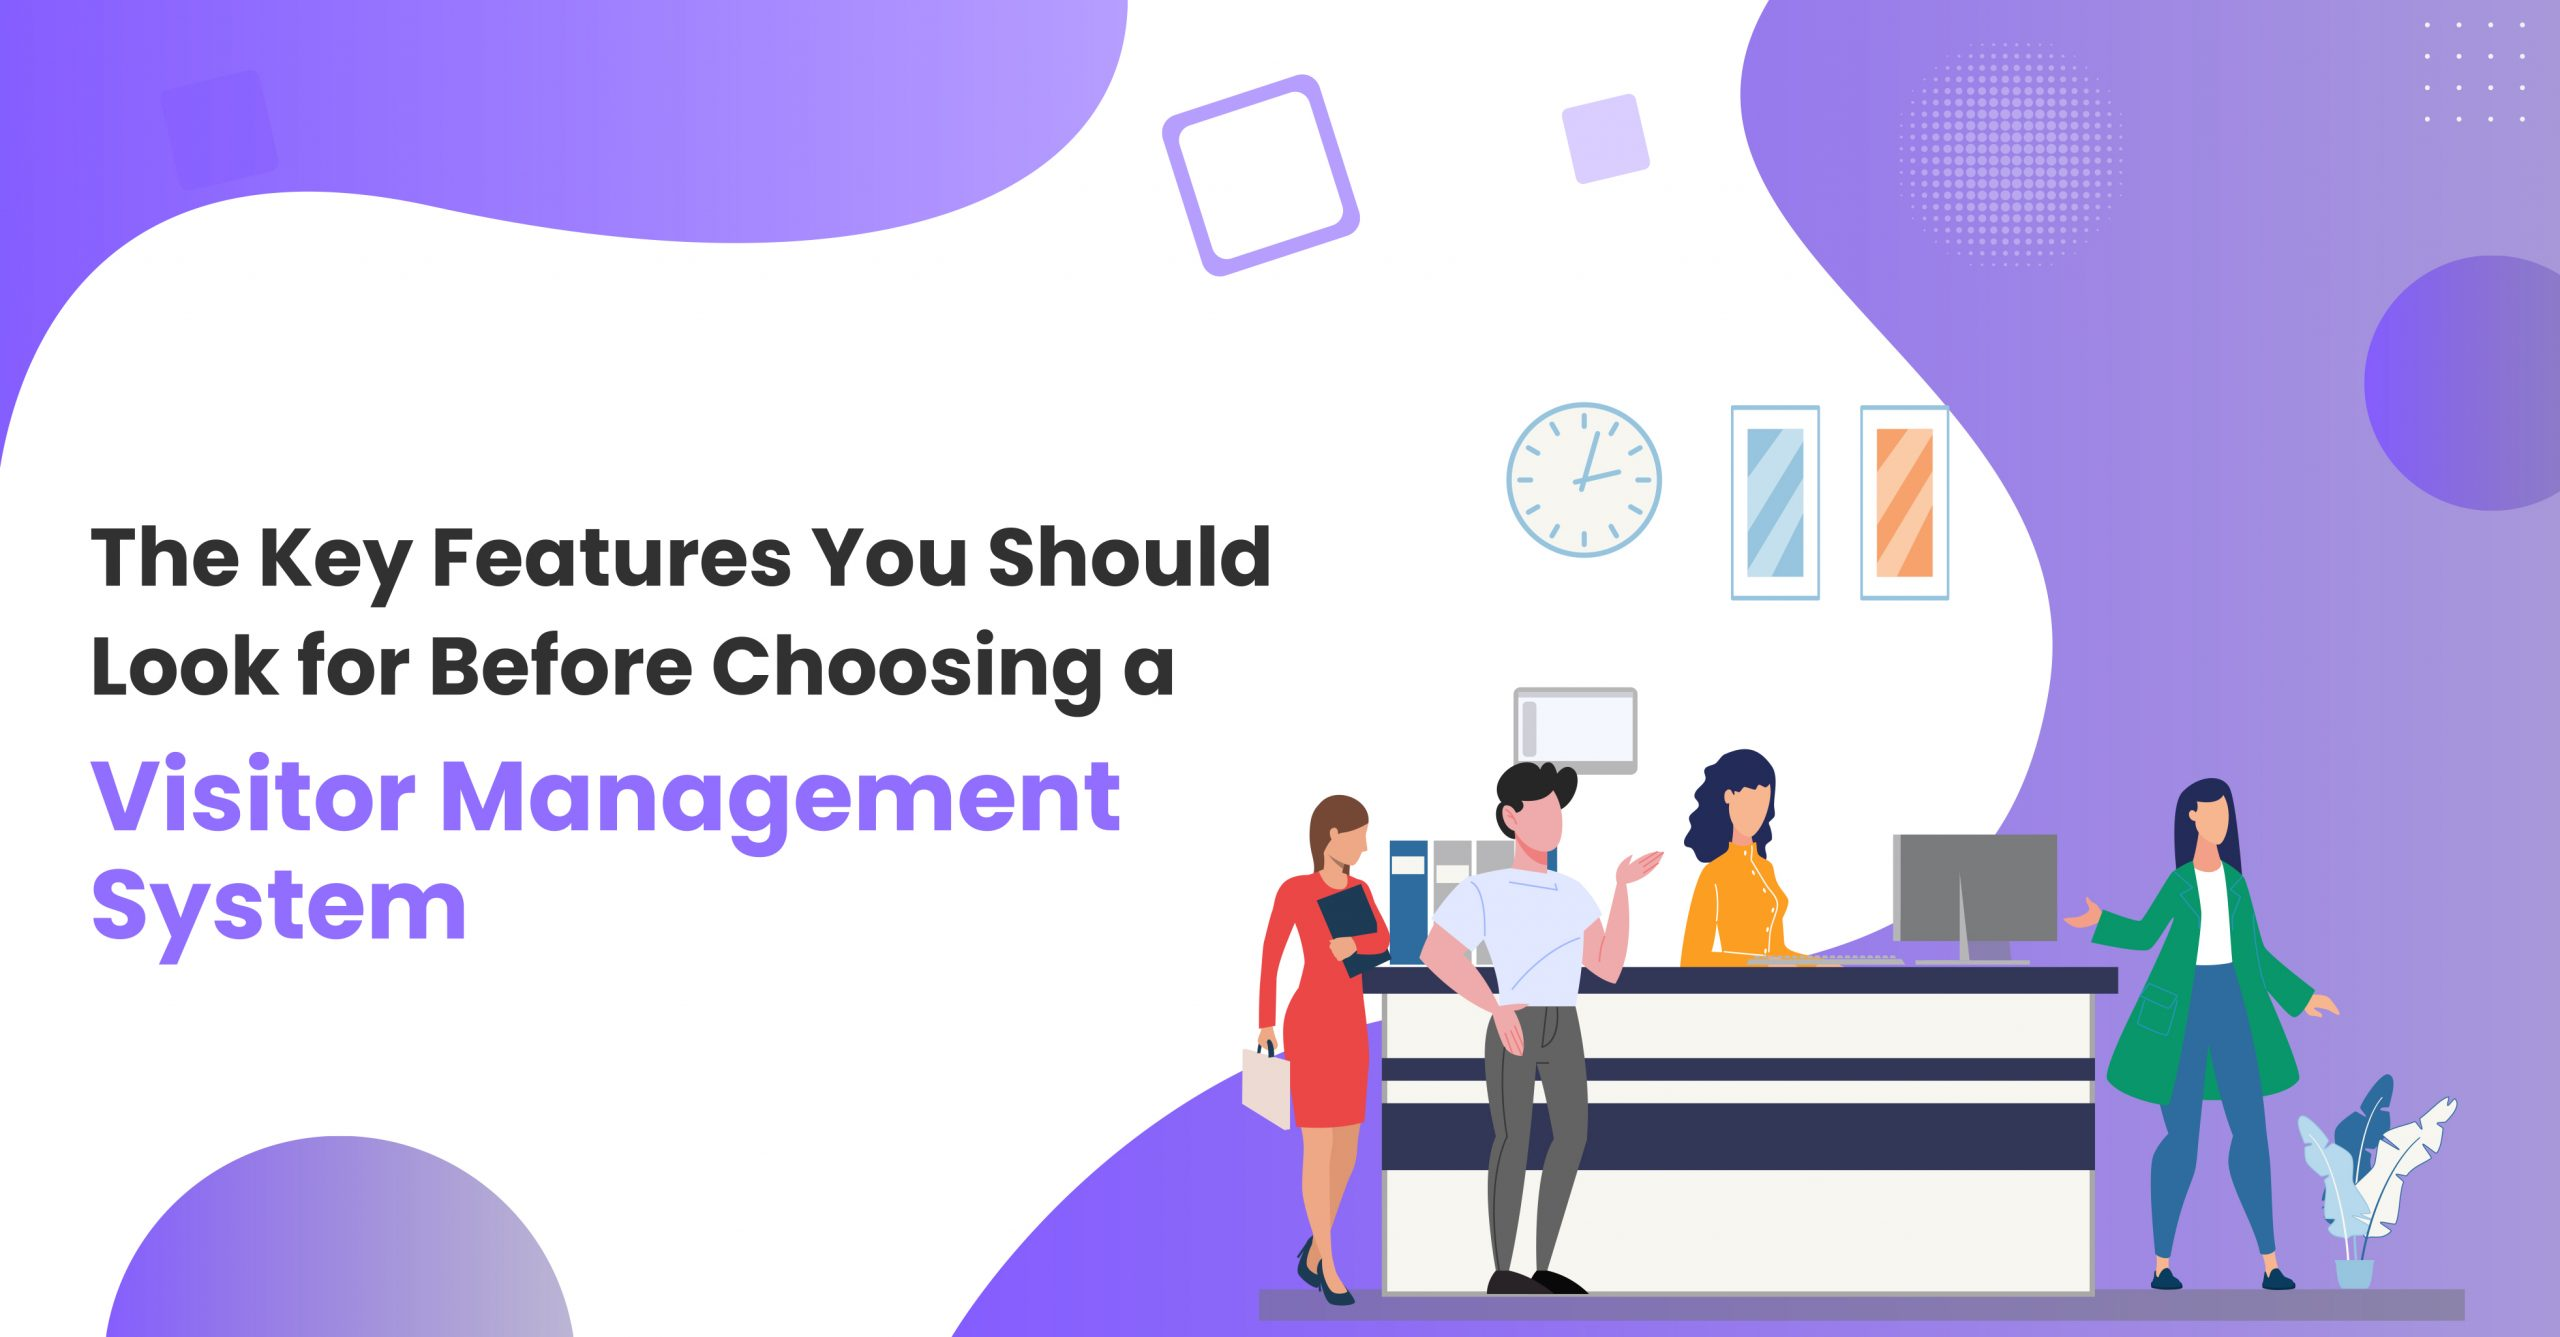 What are the Key Features You Should Look for Before Choosing a Visitor Management System